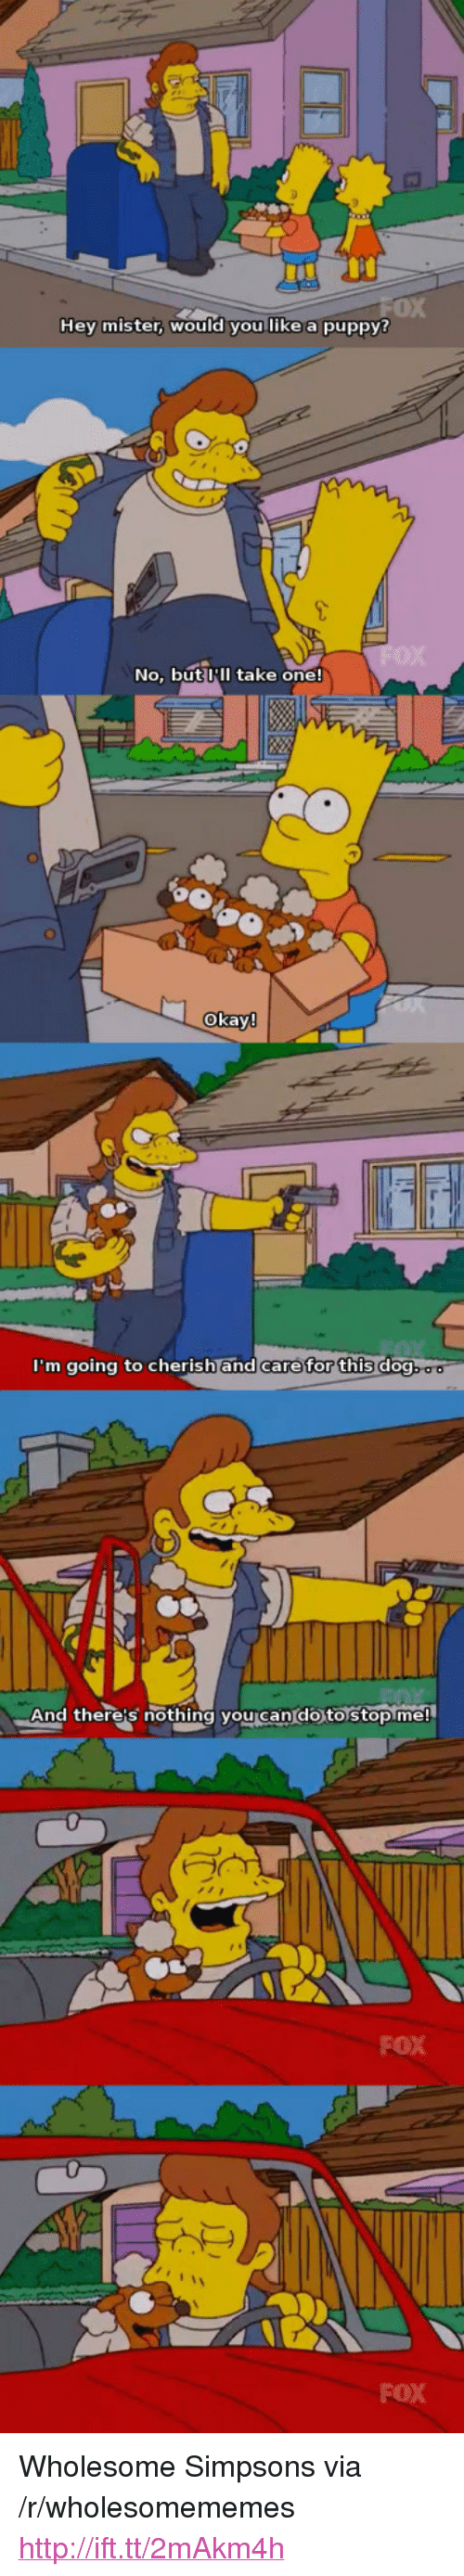 "hey mister: 0X  Hey mister, WOuld you like a puppy?  No, but III take one!  okay  m going to cherish and care for this do  And there's nothing you can'do to stopme!  FOX  FOX <p>Wholesome Simpsons via /r/wholesomememes <a href=""http://ift.tt/2mAkm4h"">http://ift.tt/2mAkm4h</a></p>"